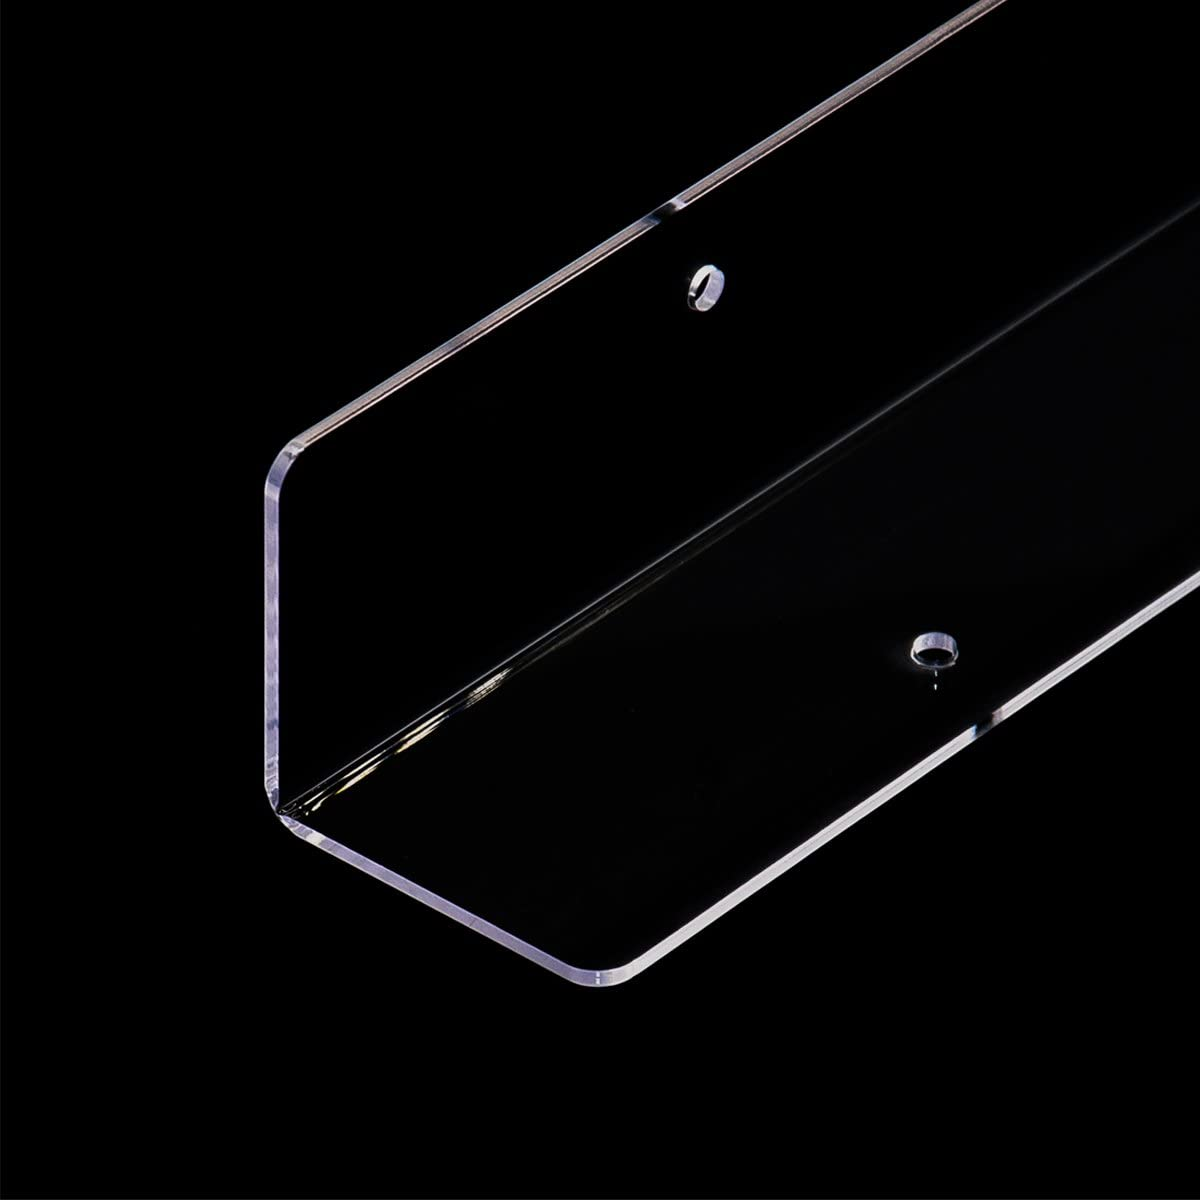 Combination of Life 100x5x5cm Baby Furniture Acrylic Clear Corner Wall Protector Safety Bumper Edge Guards with Fittings